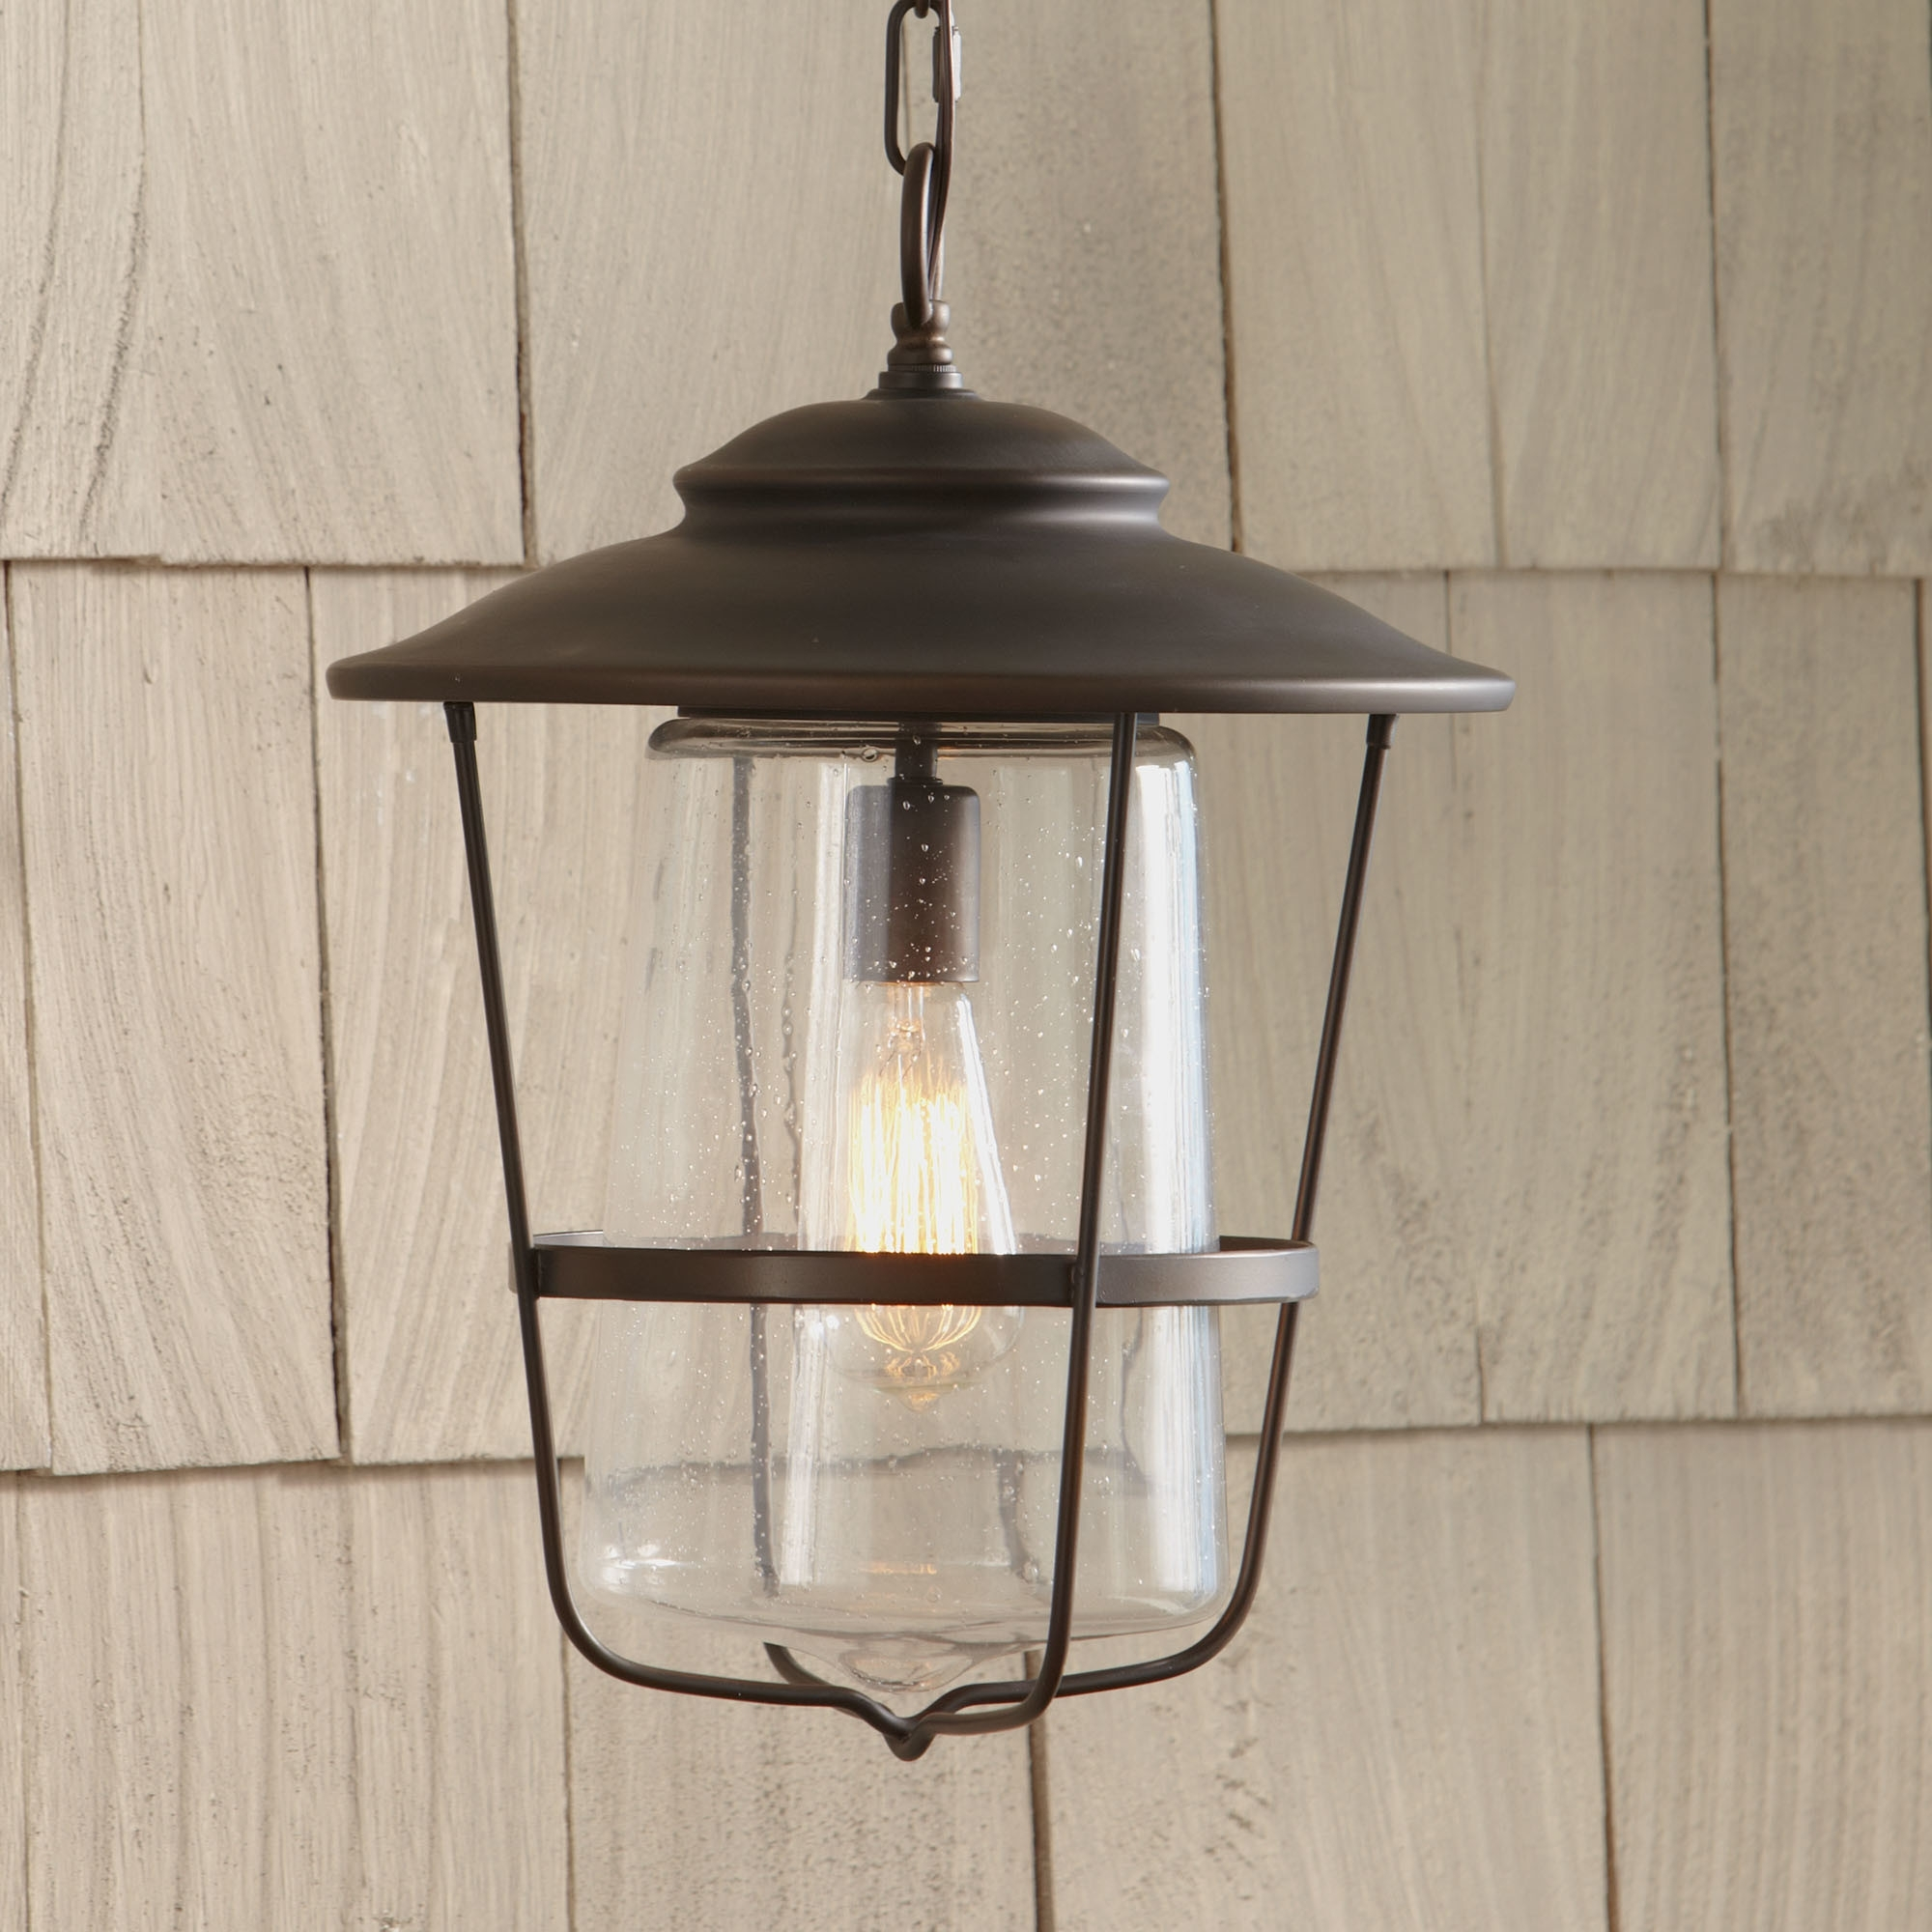 Inspiration about Outdoor Hanging Lights Wayfair Remington Lantern ~ Loversiq For Contemporary Rustic Outdoor Lighting At Wayfair (#3 of 15)